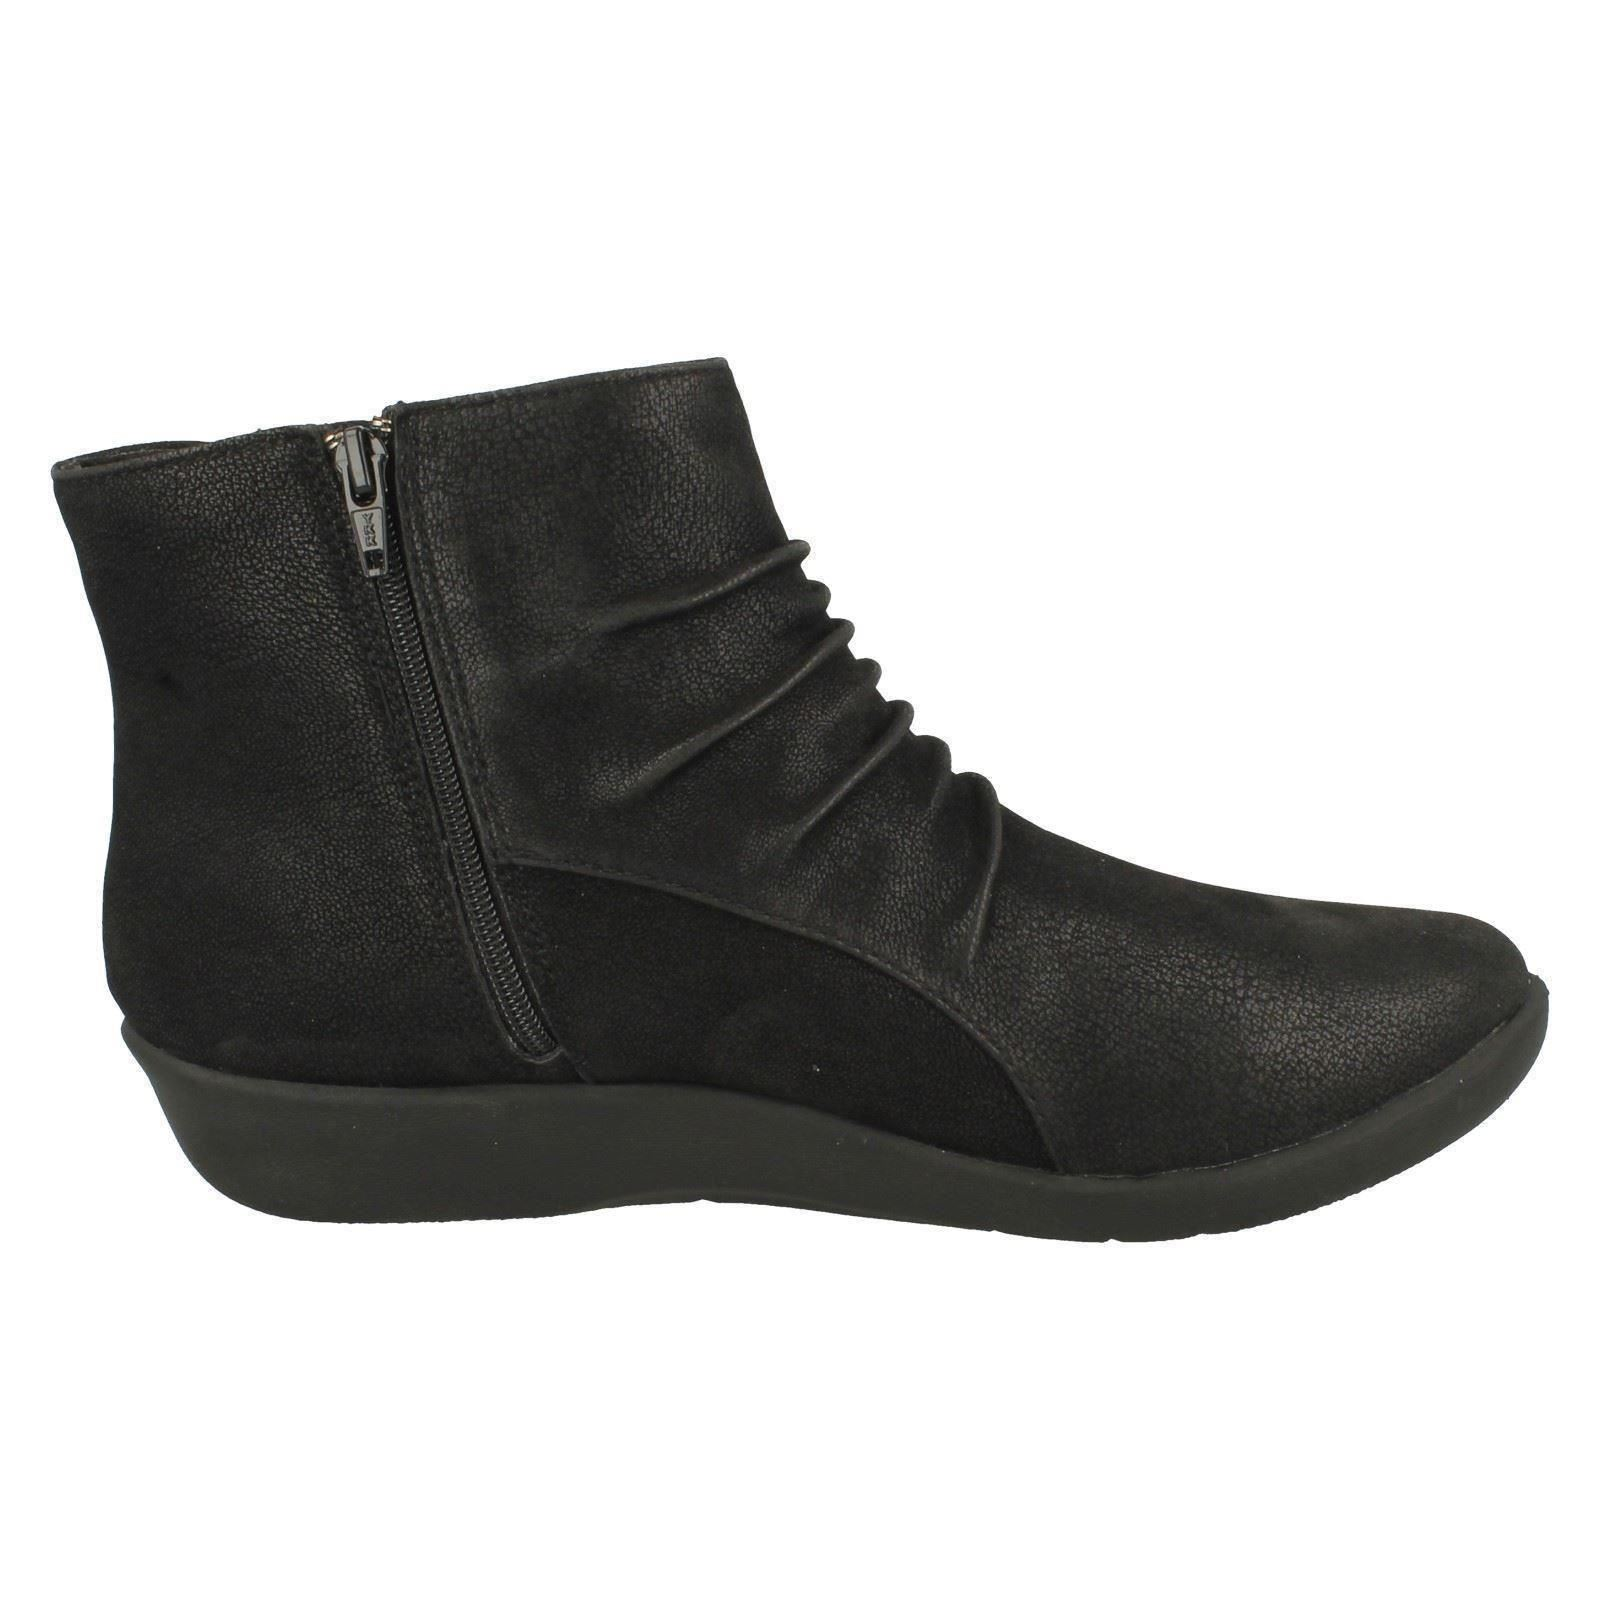 Ladies Cloud Steppers By Clarks Boots Sillian Chell Ebay